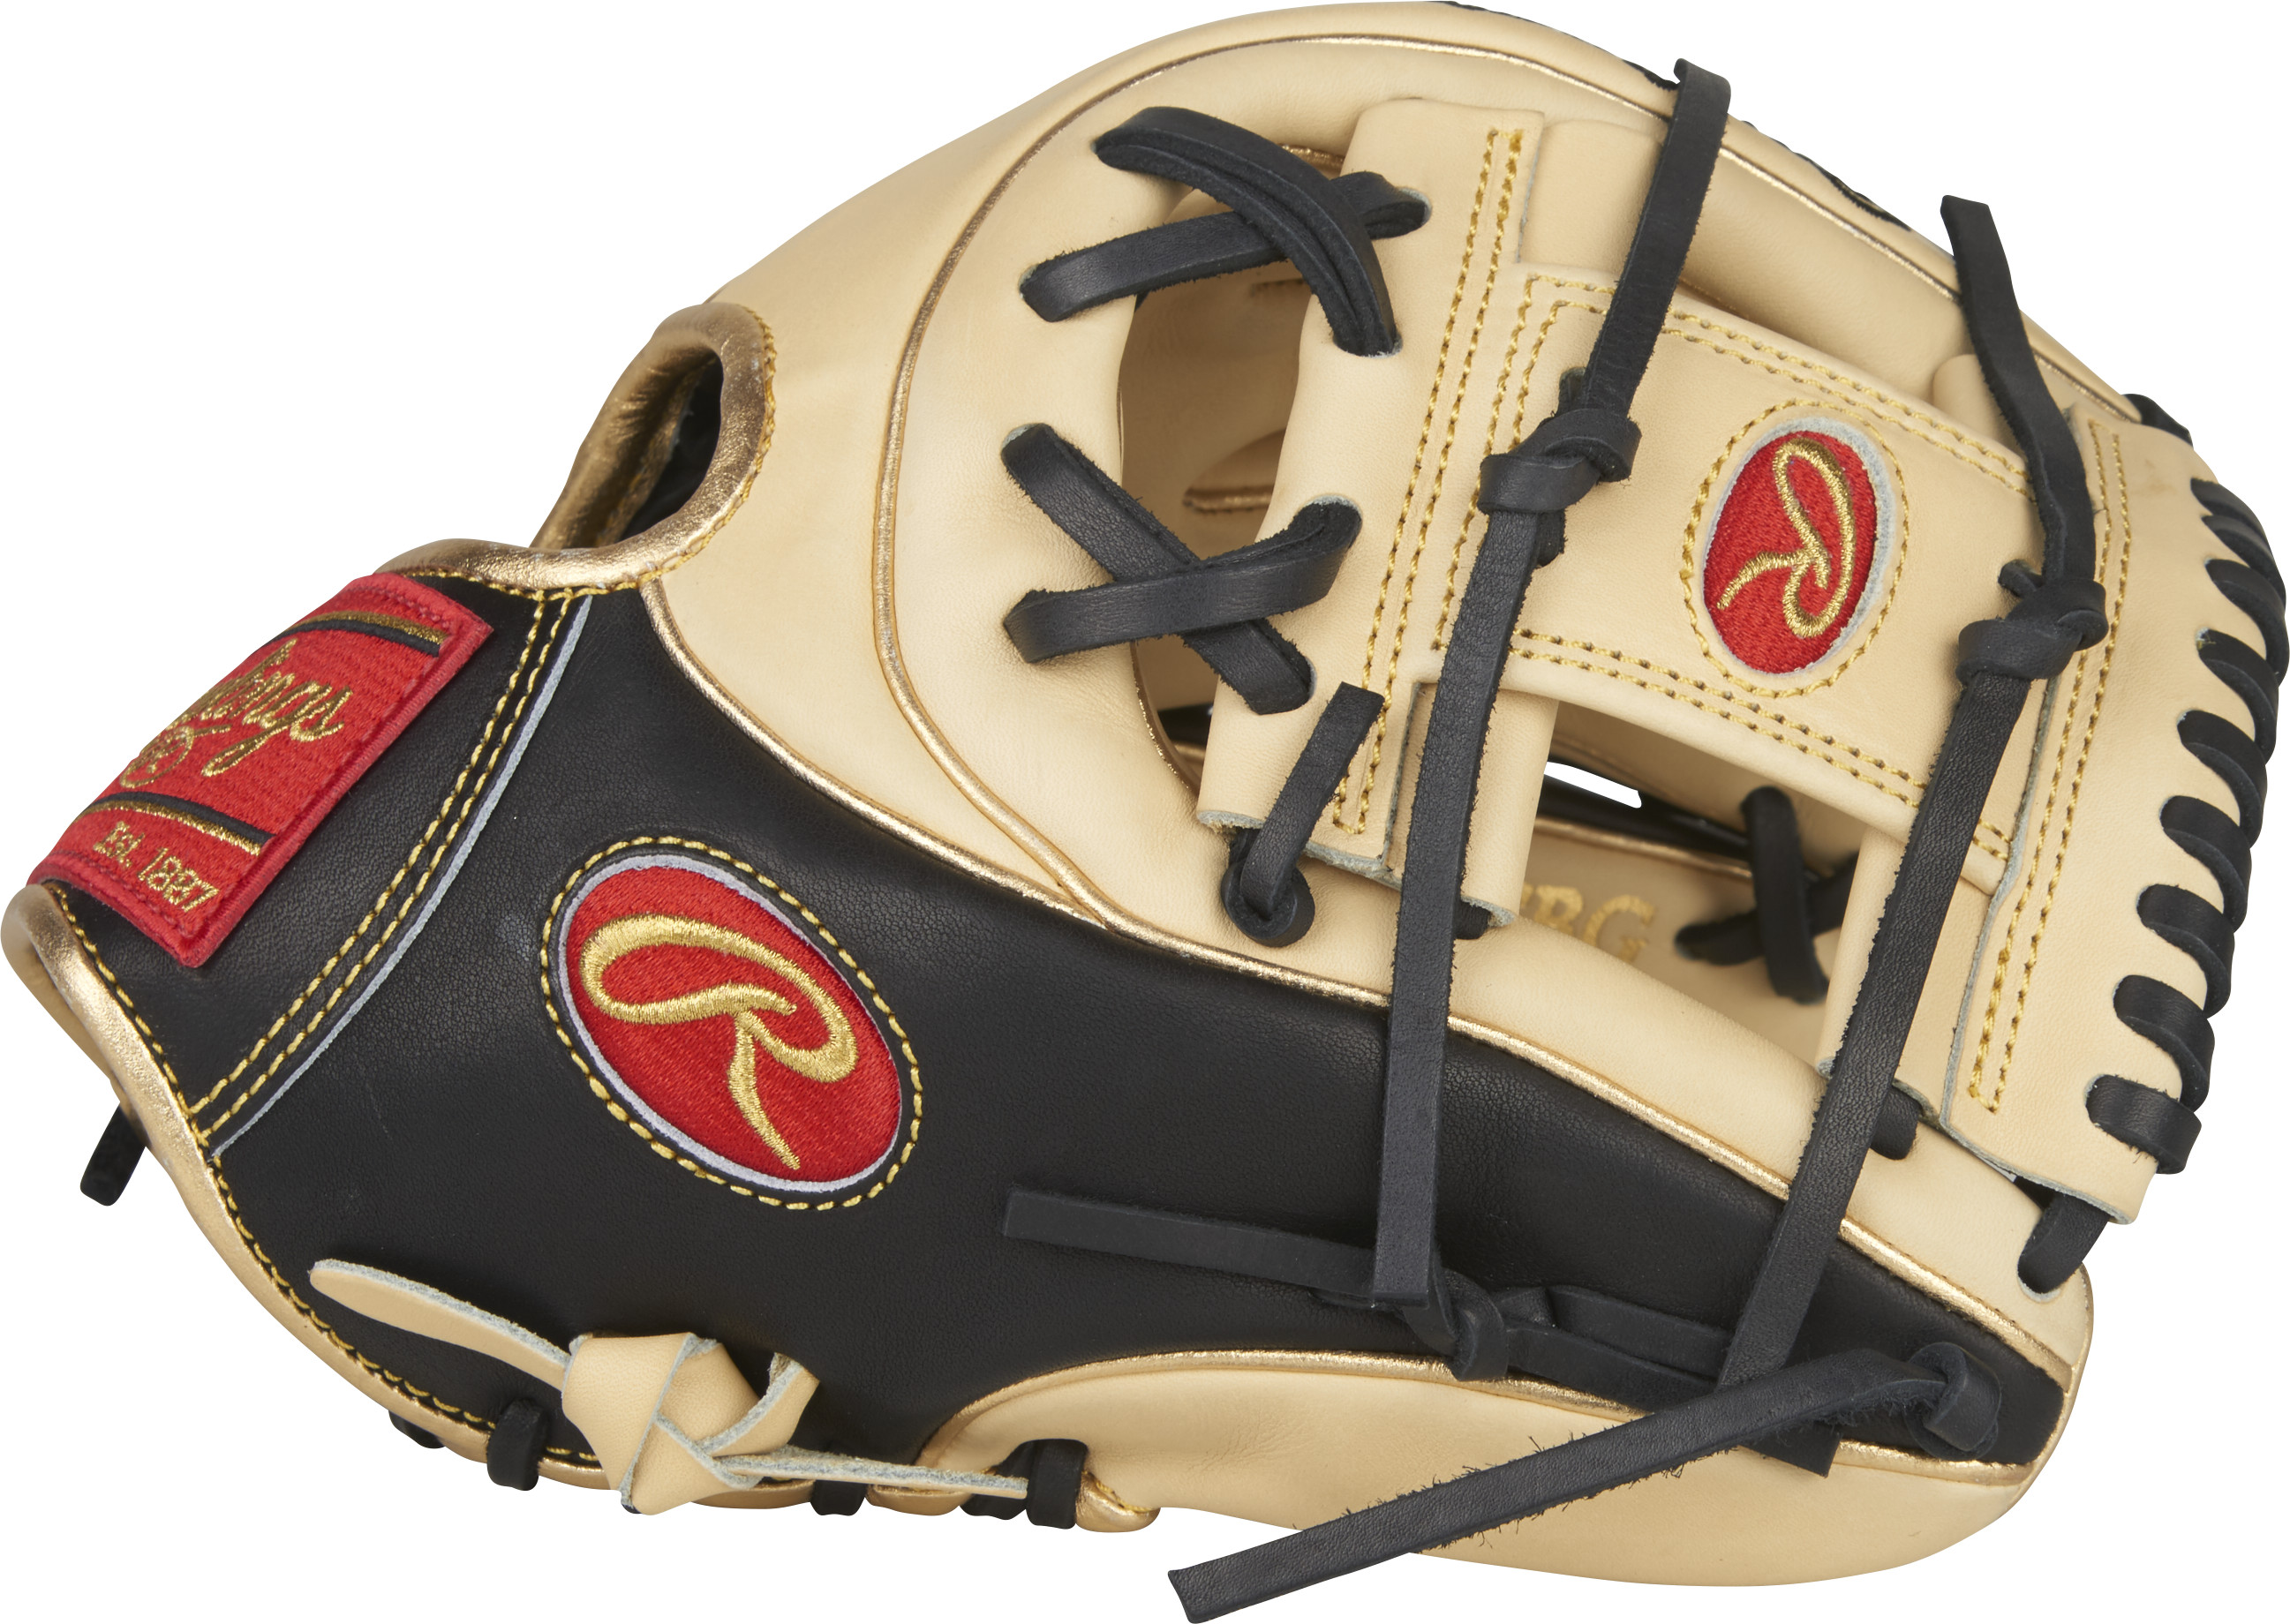 http://www.bestbatdeals.com/images/gloves/rawlings/PRO234-2CBG-3.jpg